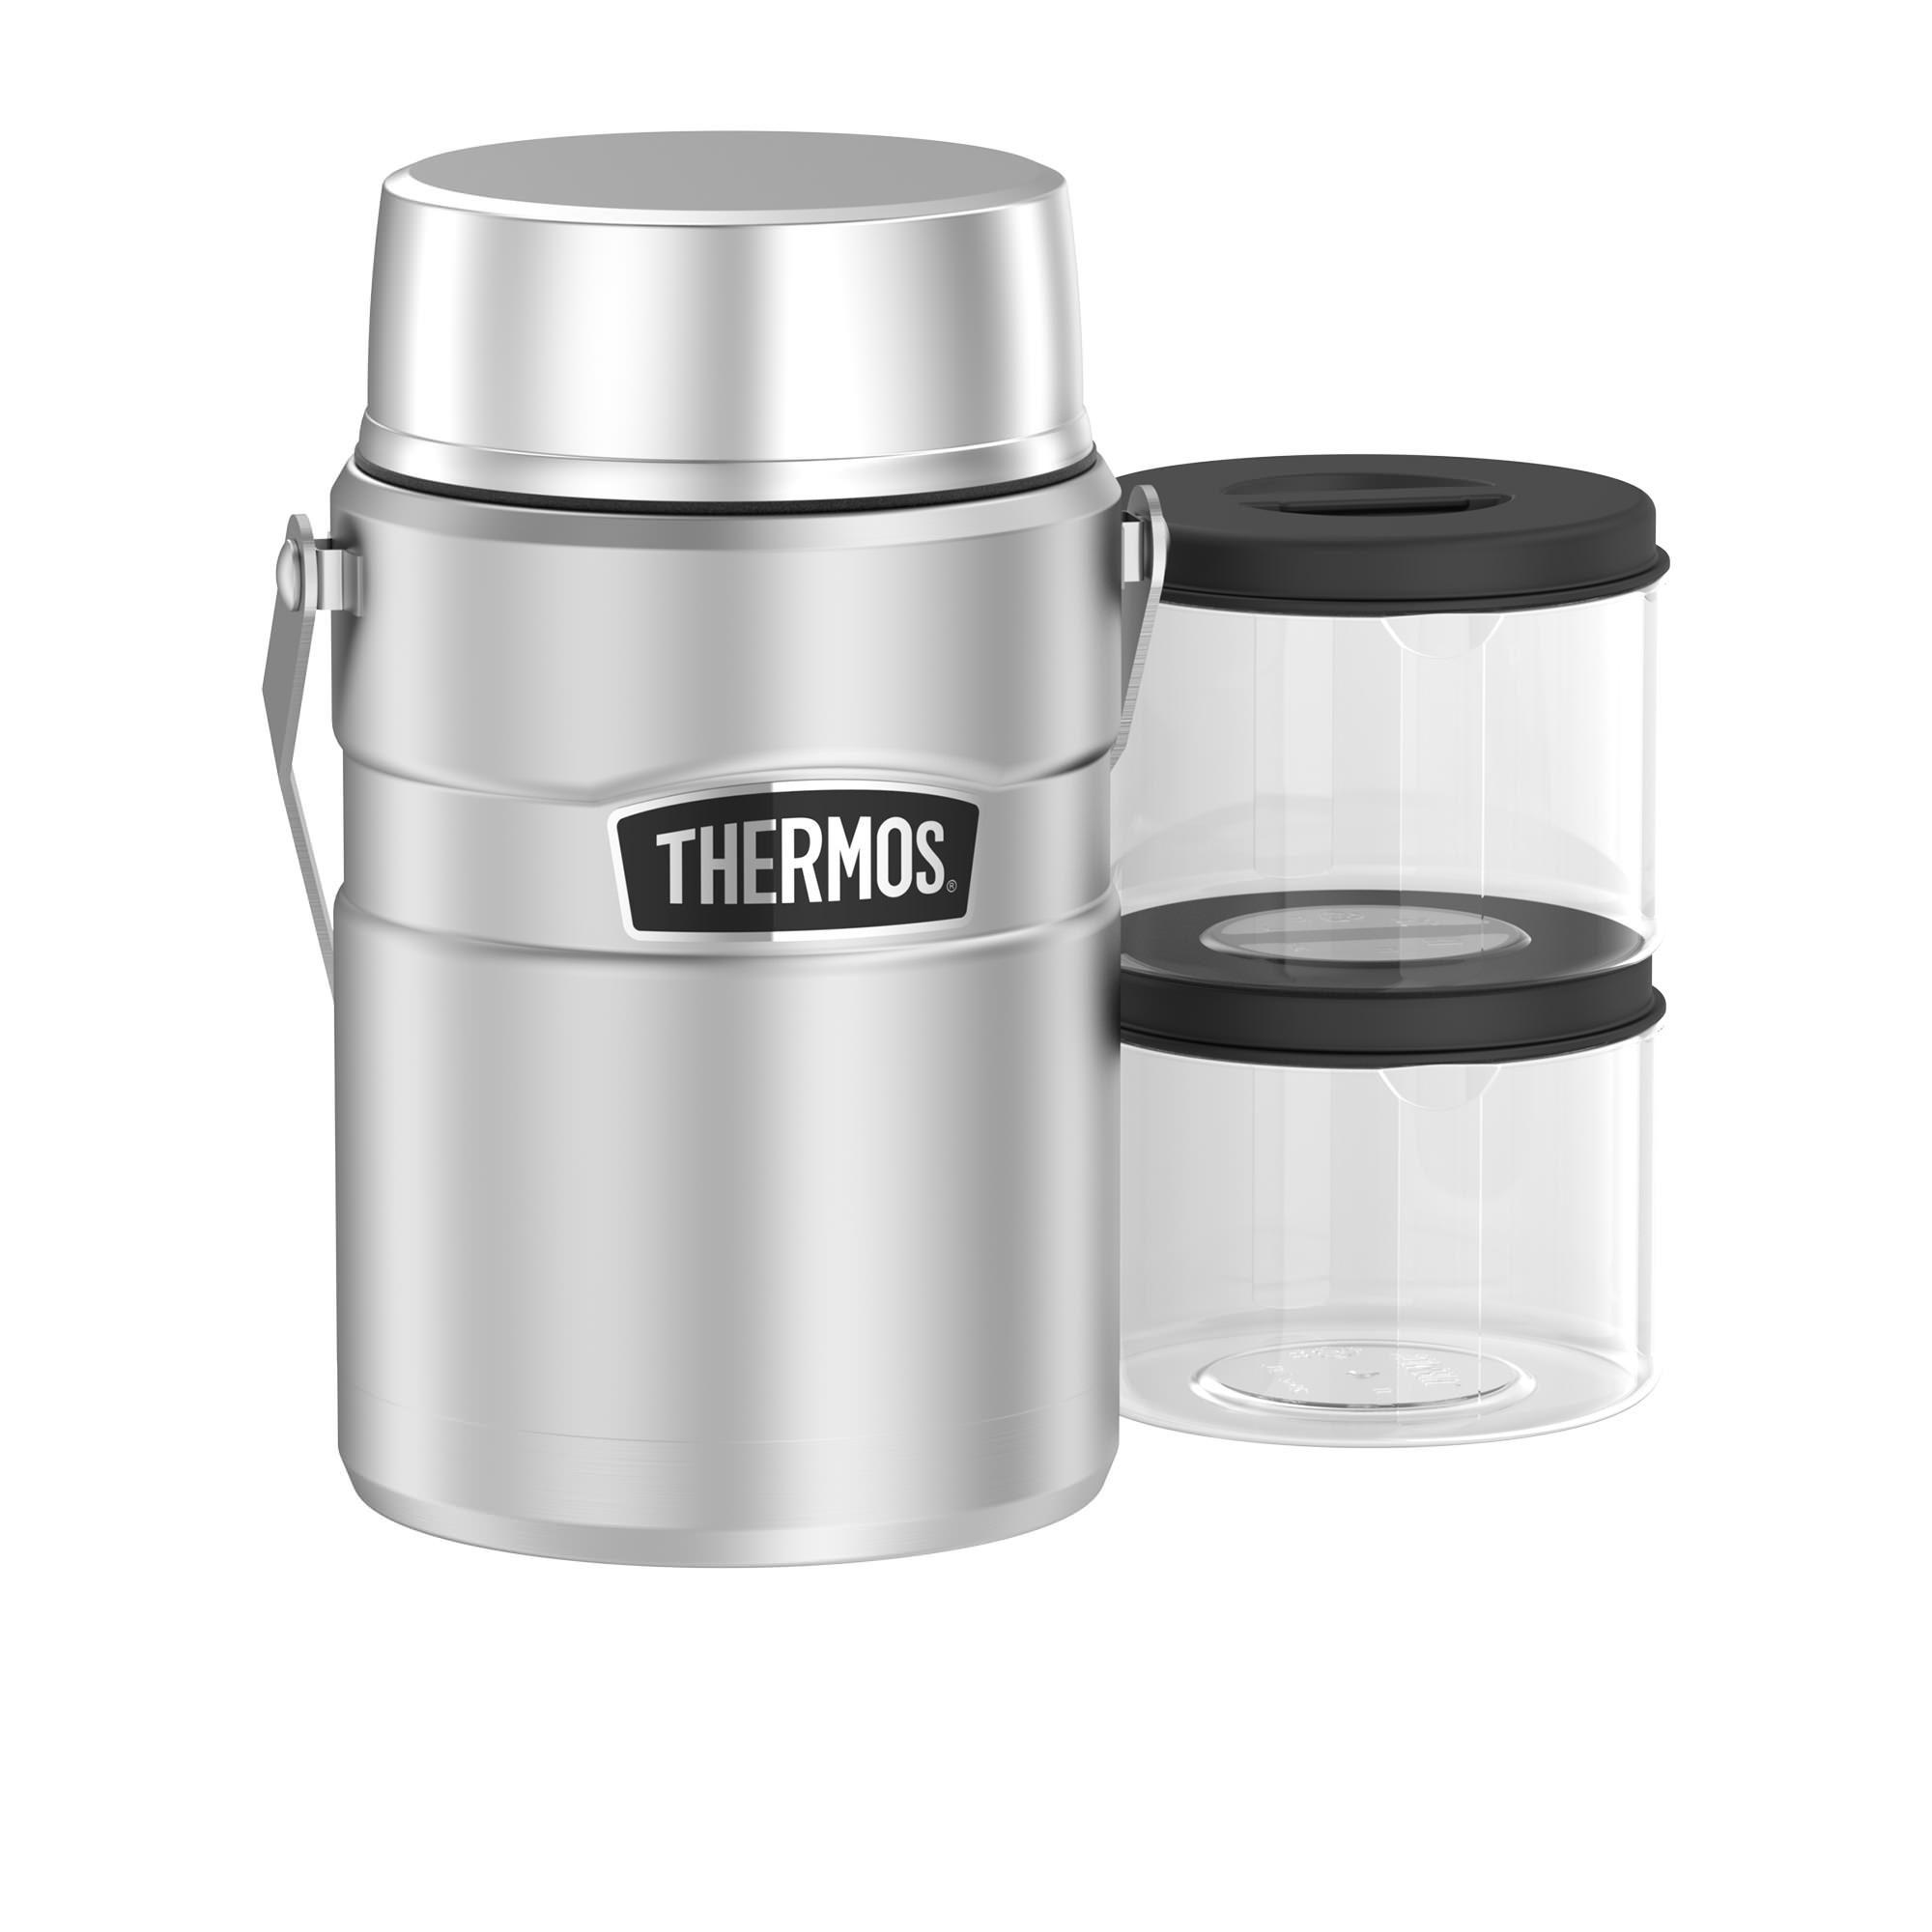 Thermos Stainless King Big Boss Food Jar 1.39L Stainless Steel